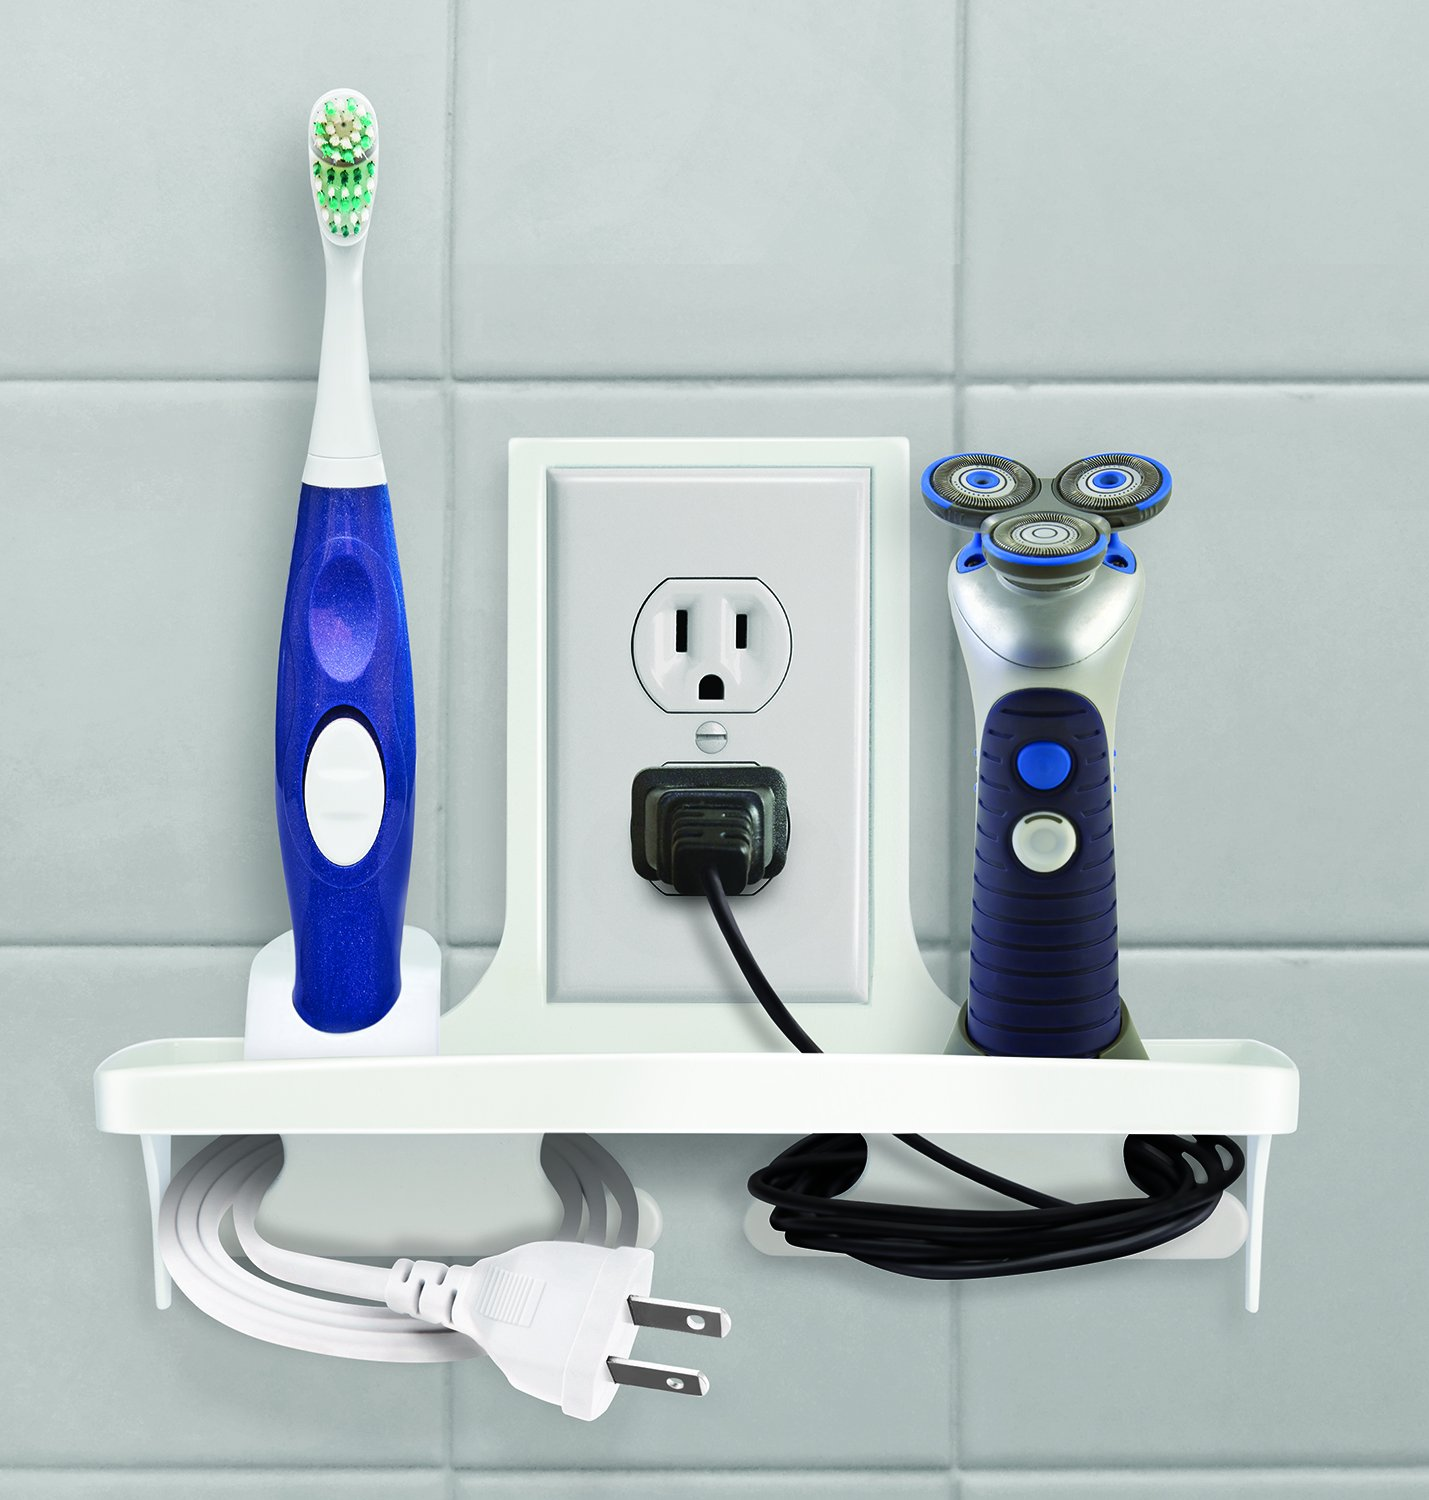 IdeaWorks Wall Outlet Organizer Stores, Organizes, And Charges Your Phone, Electric Toothbrush, and Shavers,White,9''